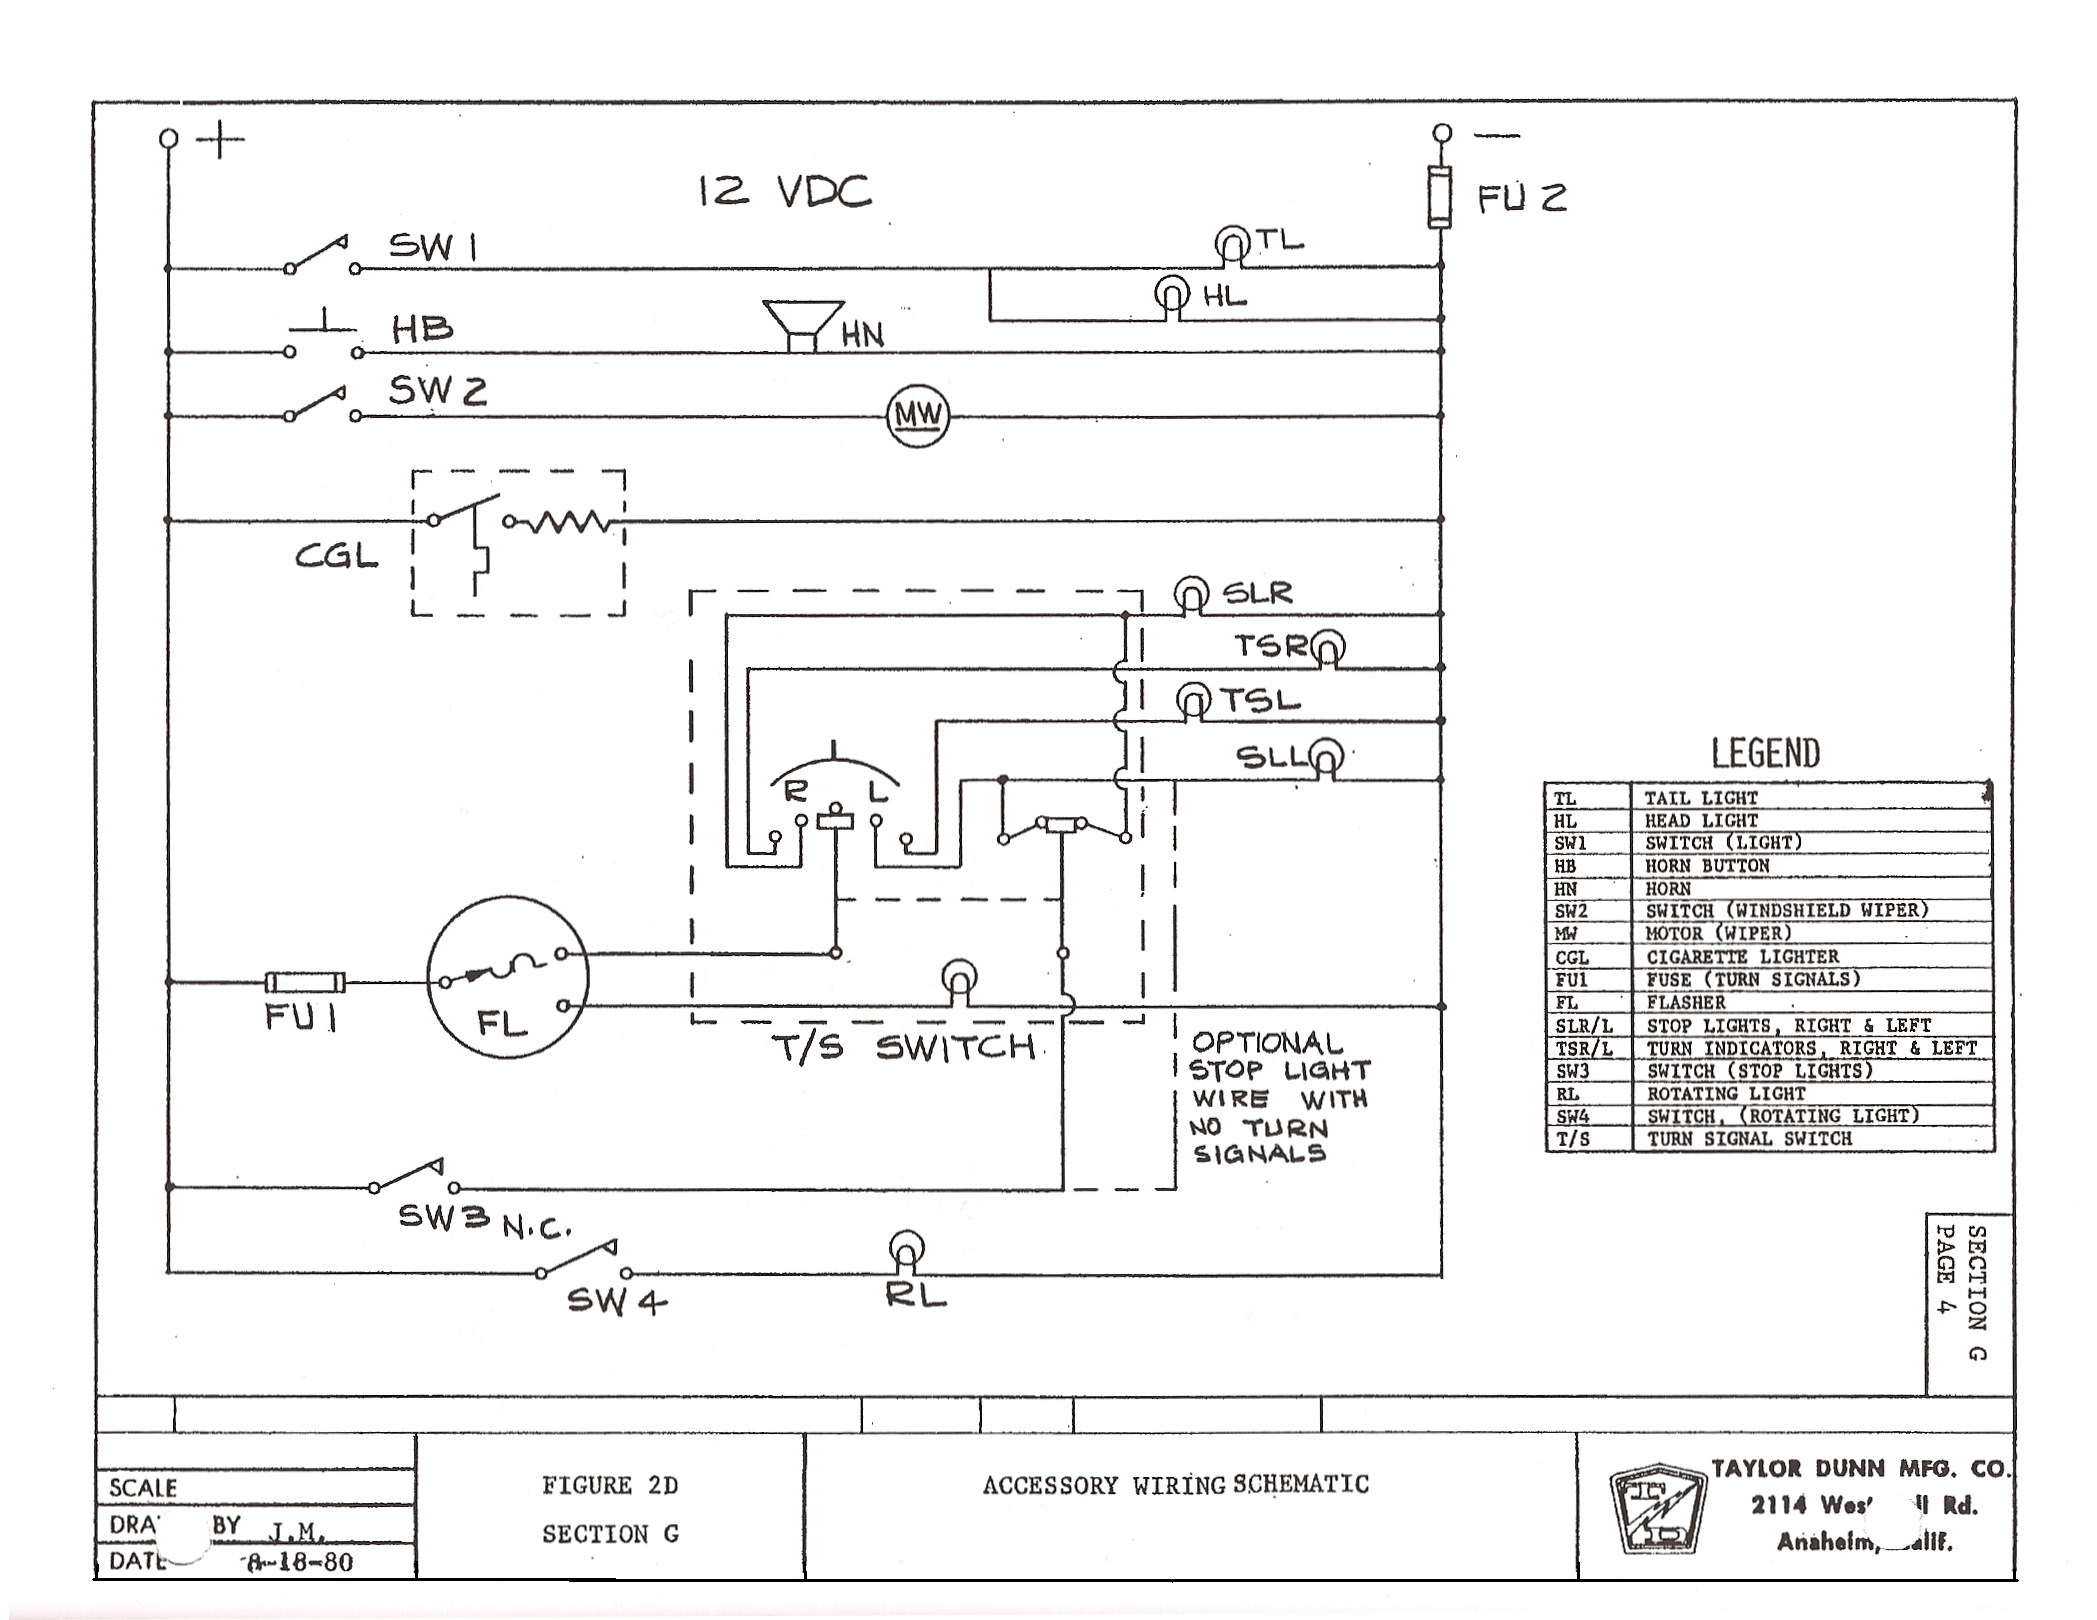 Taylor Dunn Sc1 59 Parts Manual Otis Golf Cart Wiring Diagram Marvellous Mihanblogcom